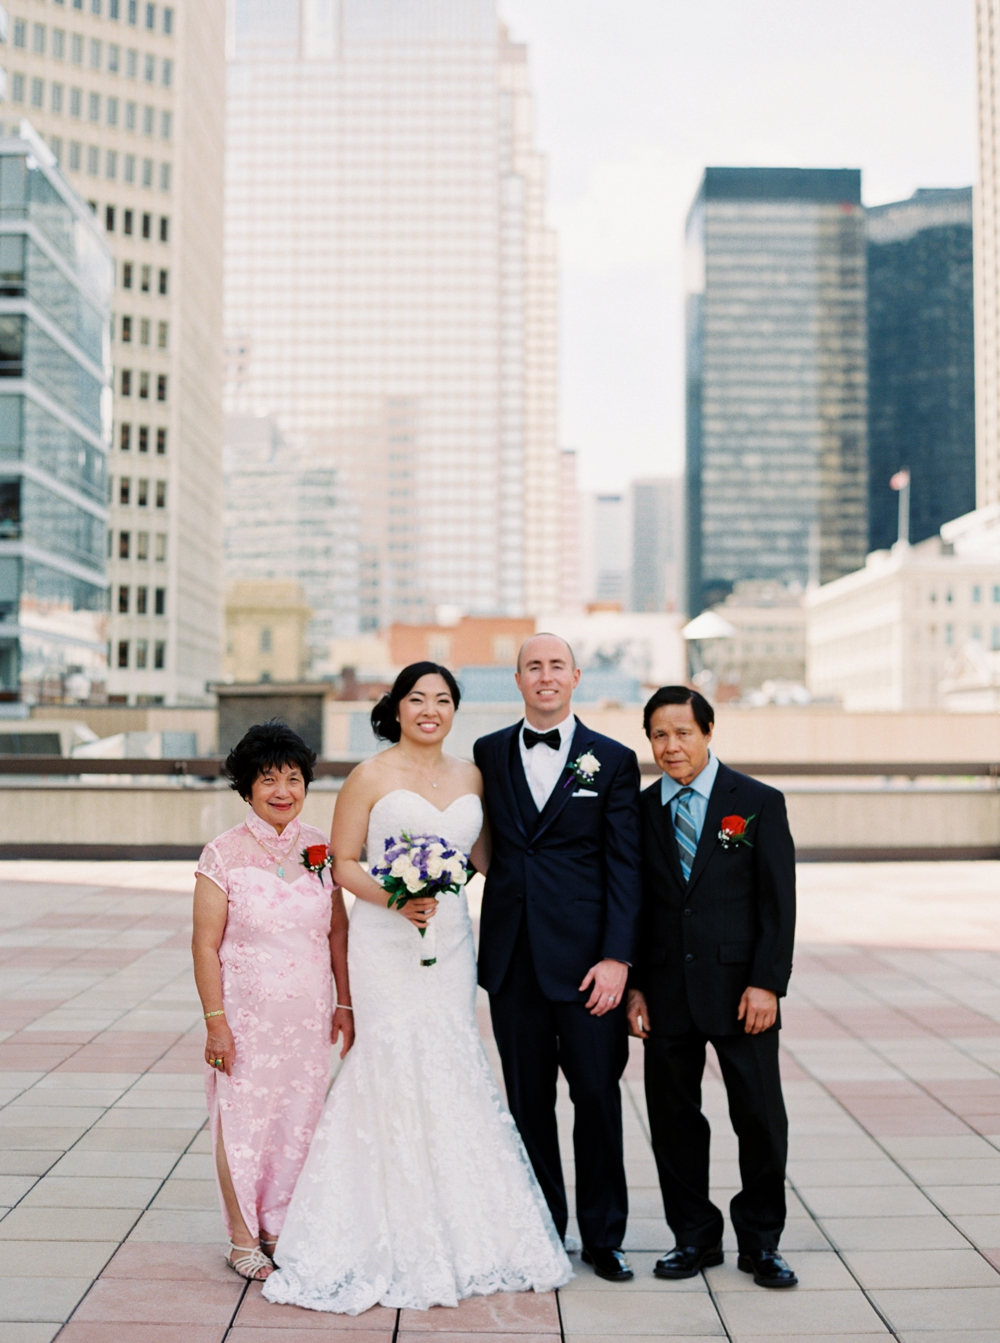 Calgary wedding photographers | chinese wedding | downtown calgary wedding photography | Civic on Third calgary wedding | mariott downtown calgary rooftop wedding